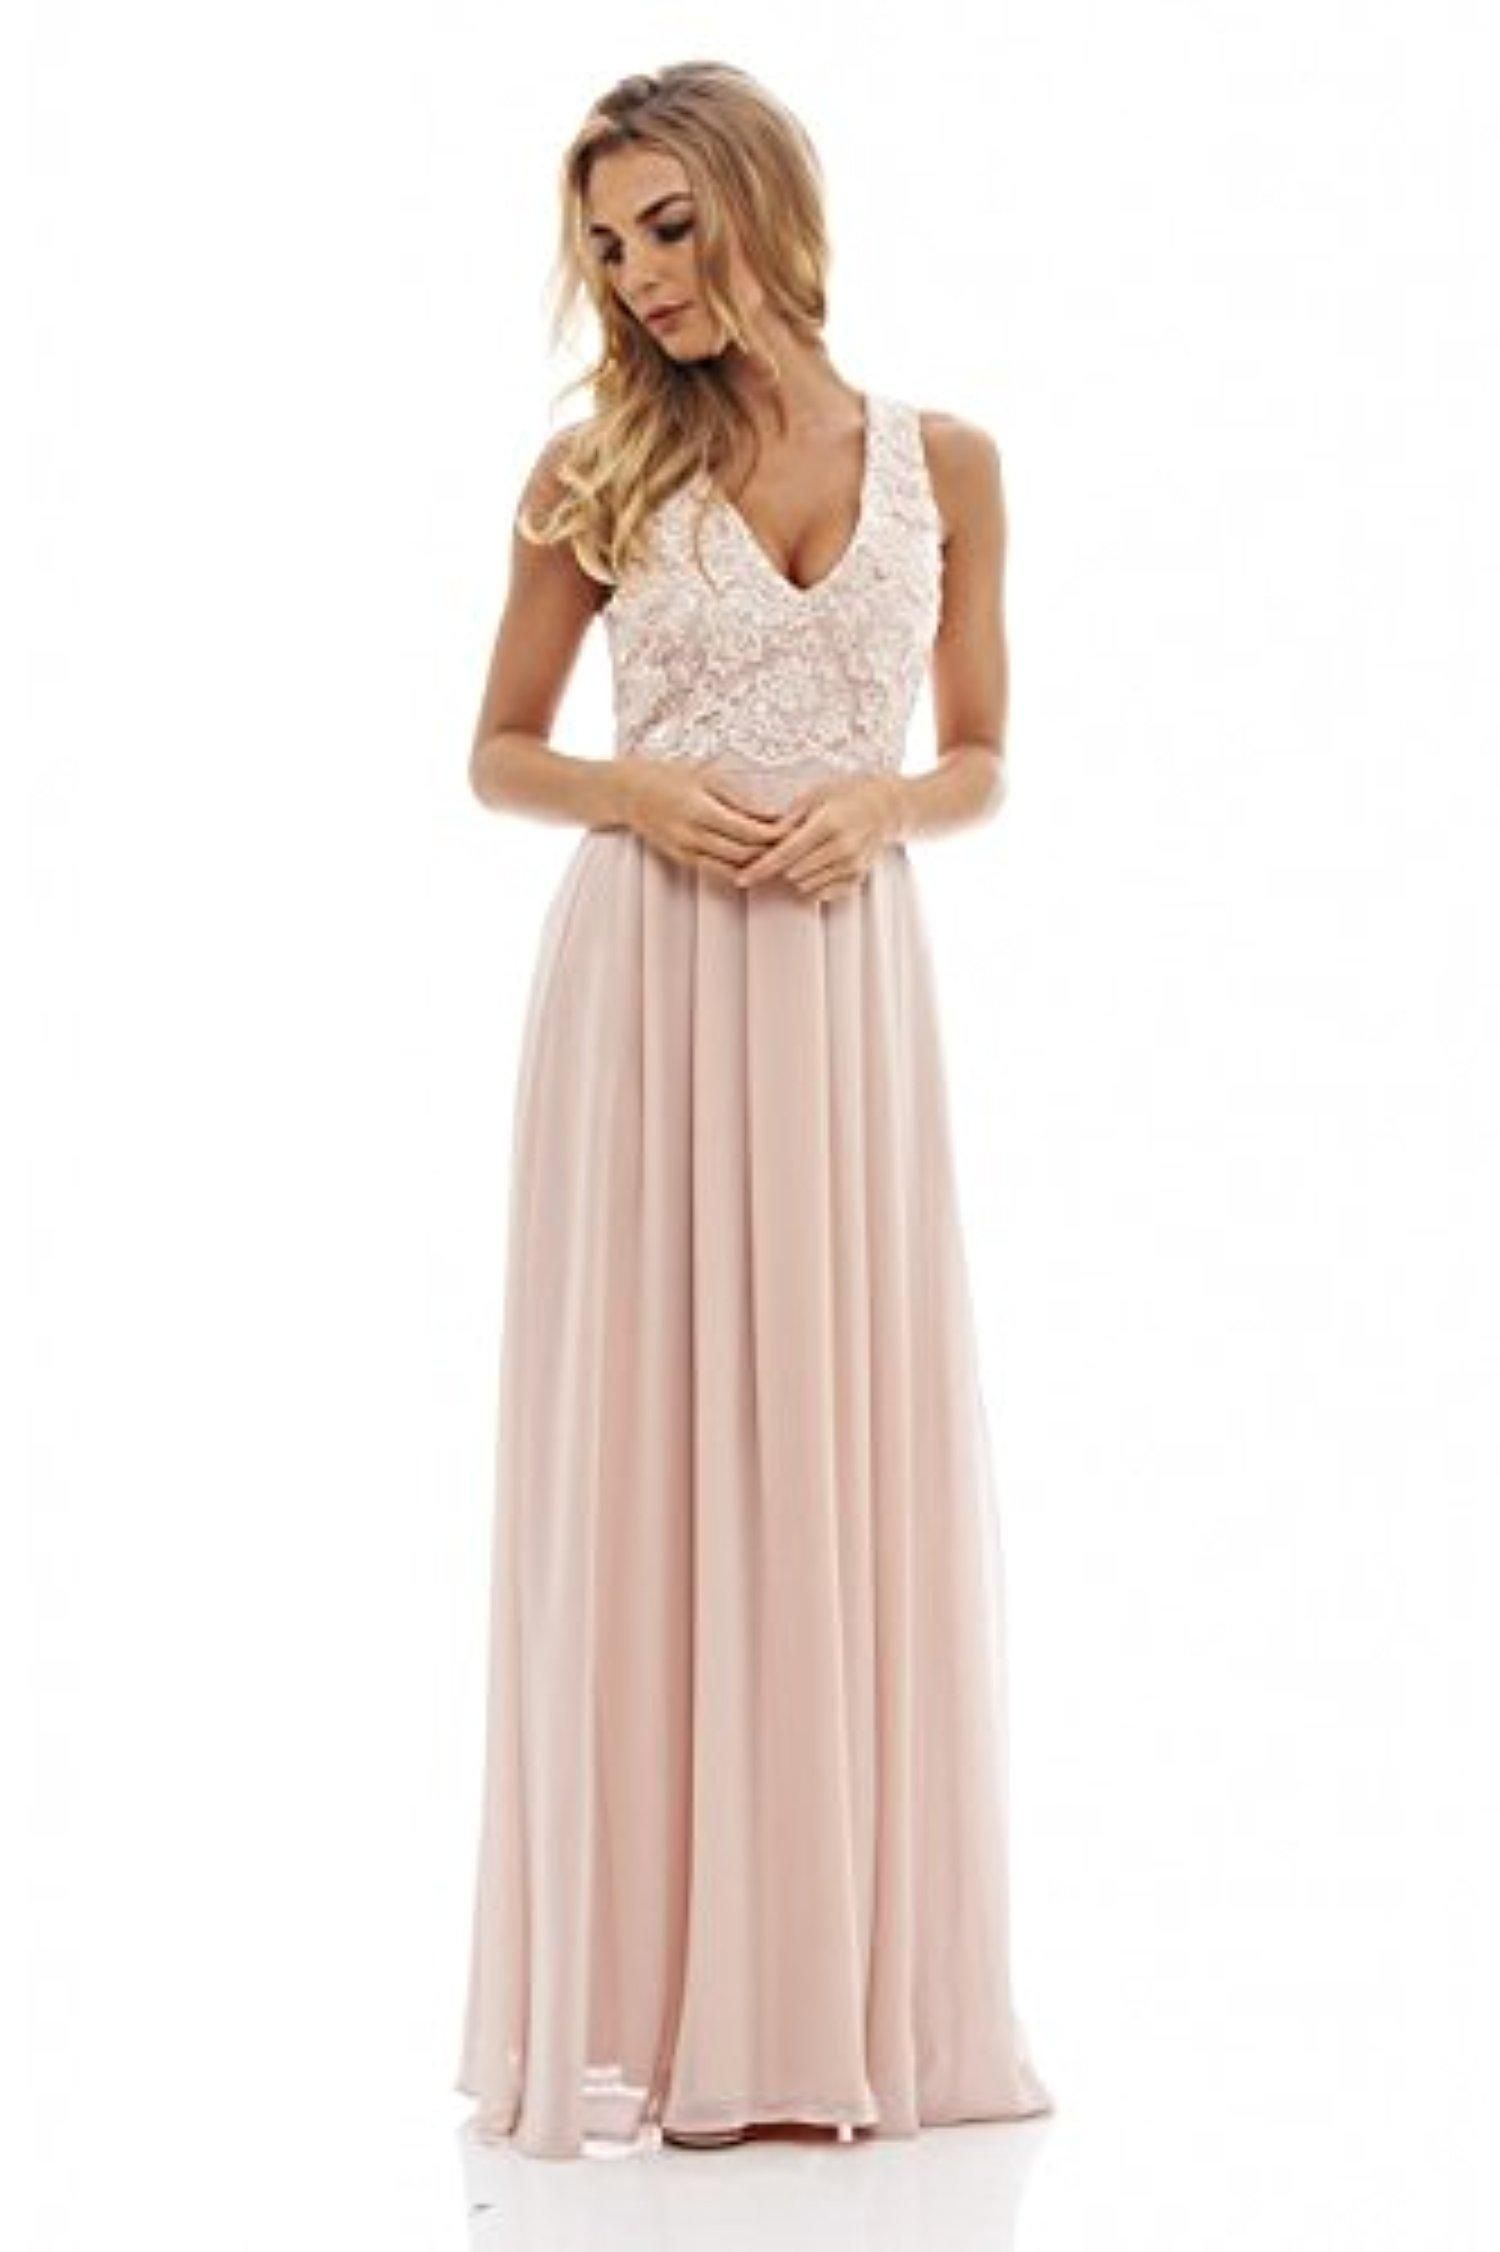 AX Paris Women's Beige Lace Top Maxi Dress(Nude, Size:10) - Brought to you  by Avarsha.com